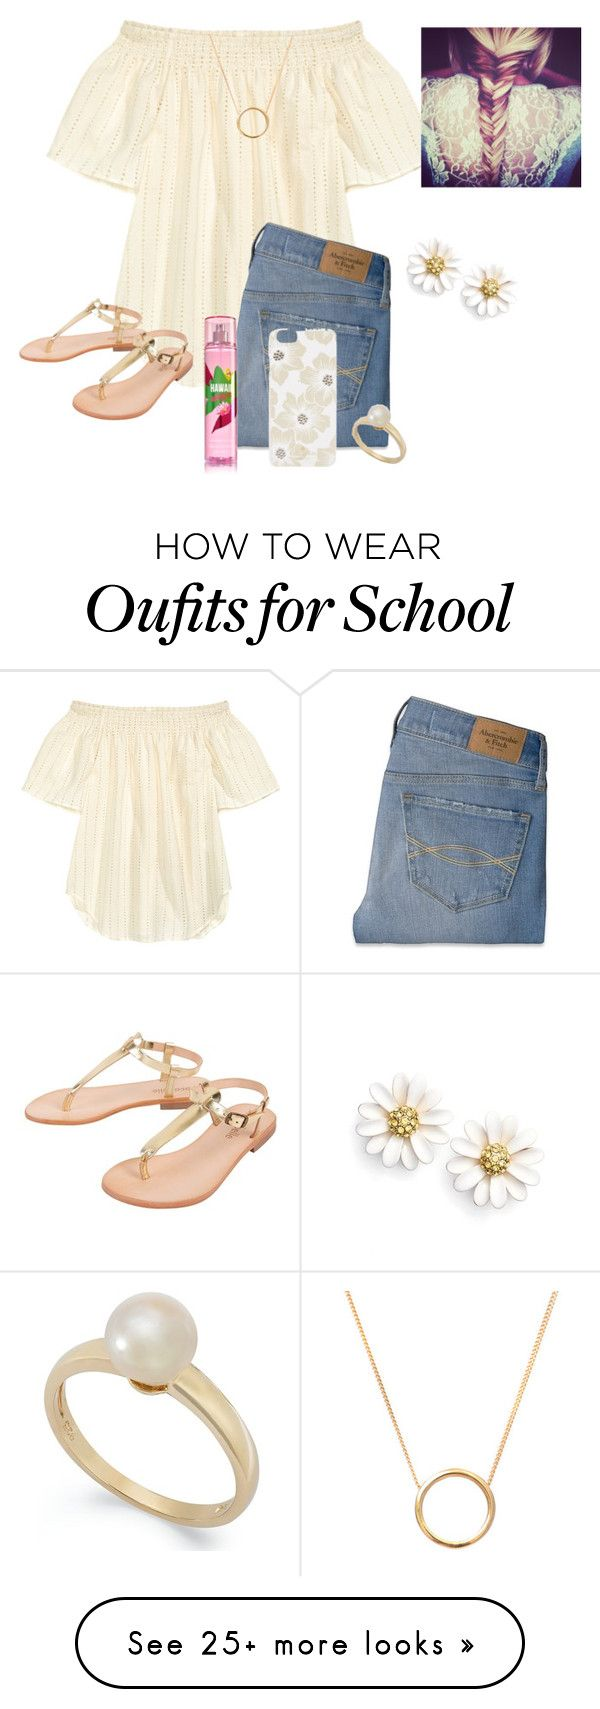 """Only 15 more days of school "" by raquate1232 on Polyvore featuring Cocobelle, Abercrombie & Fitch, Kate Spade, Lee Renee and Victoria Townsend"